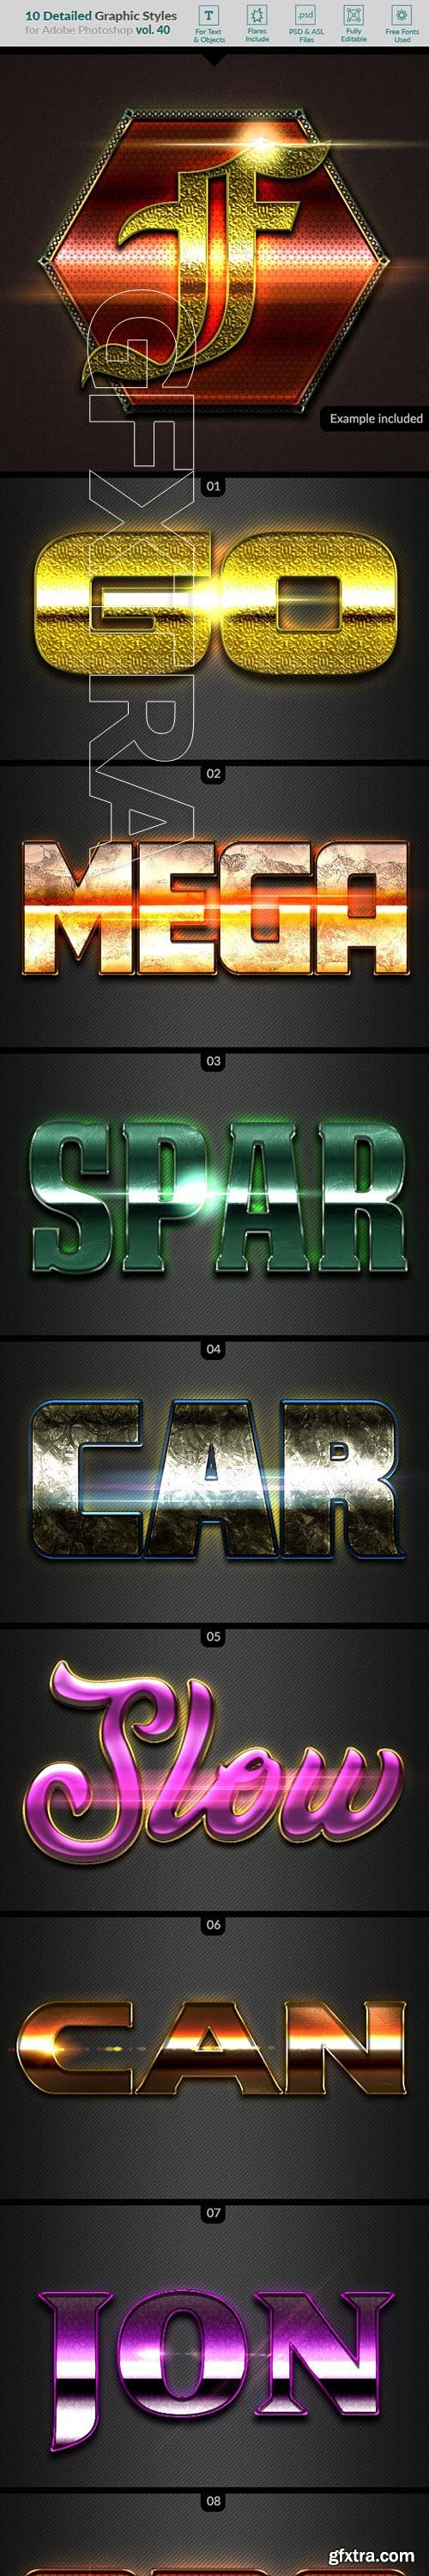 GraphicRiver - 10 Text Effects Vol 40 23504095